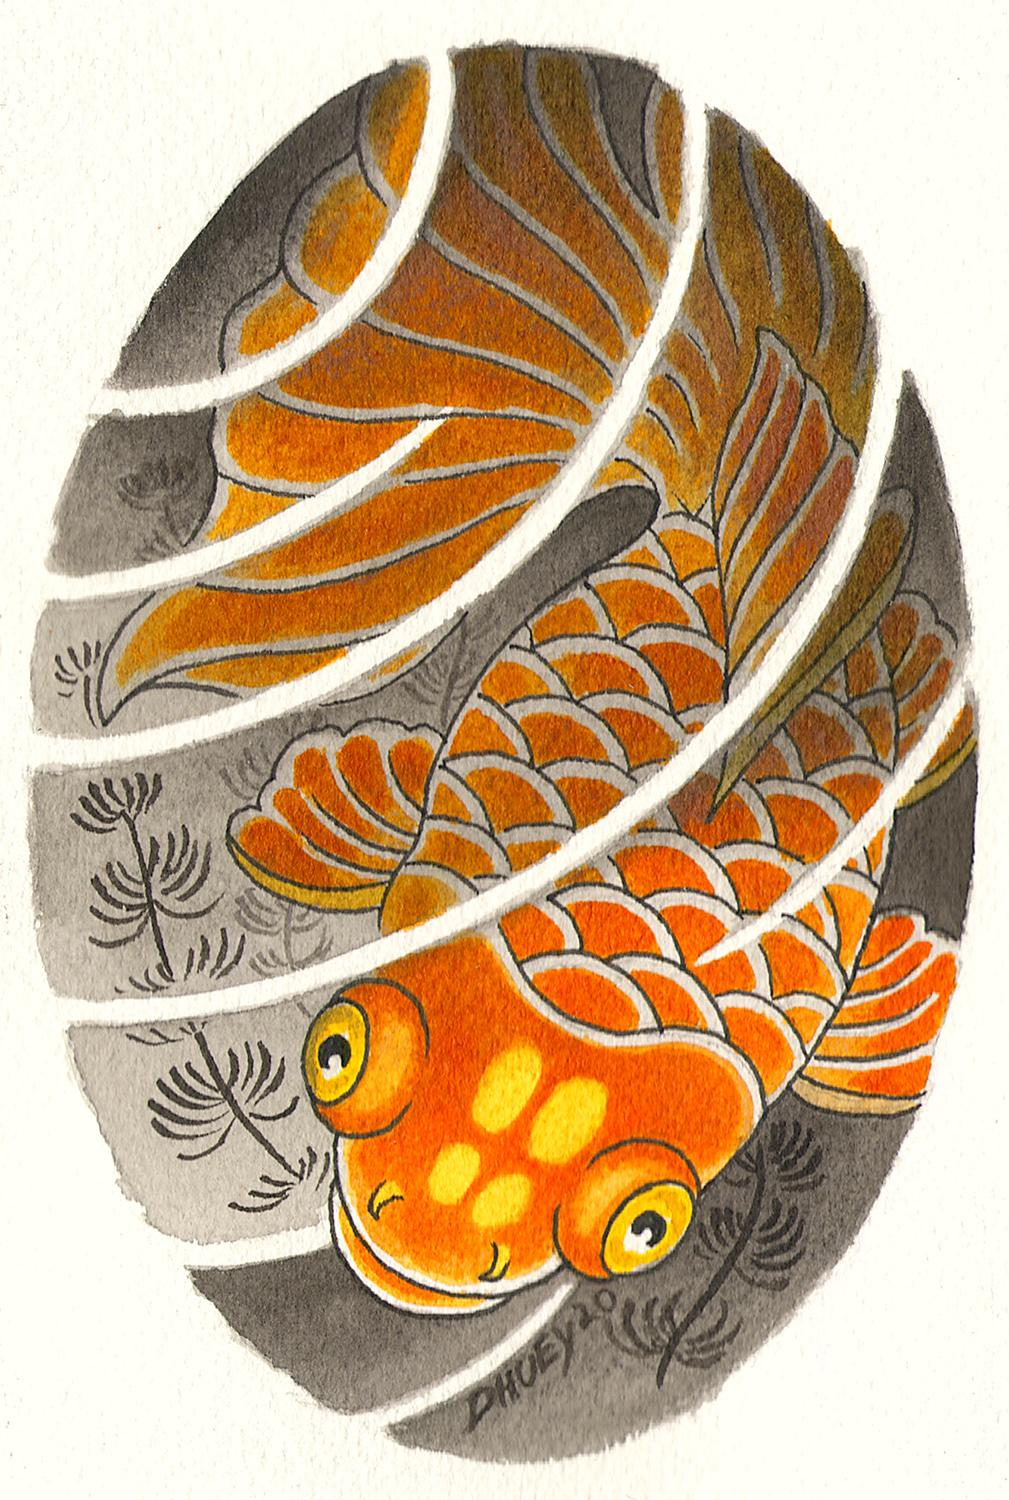 Image of Kingyo/goldfish